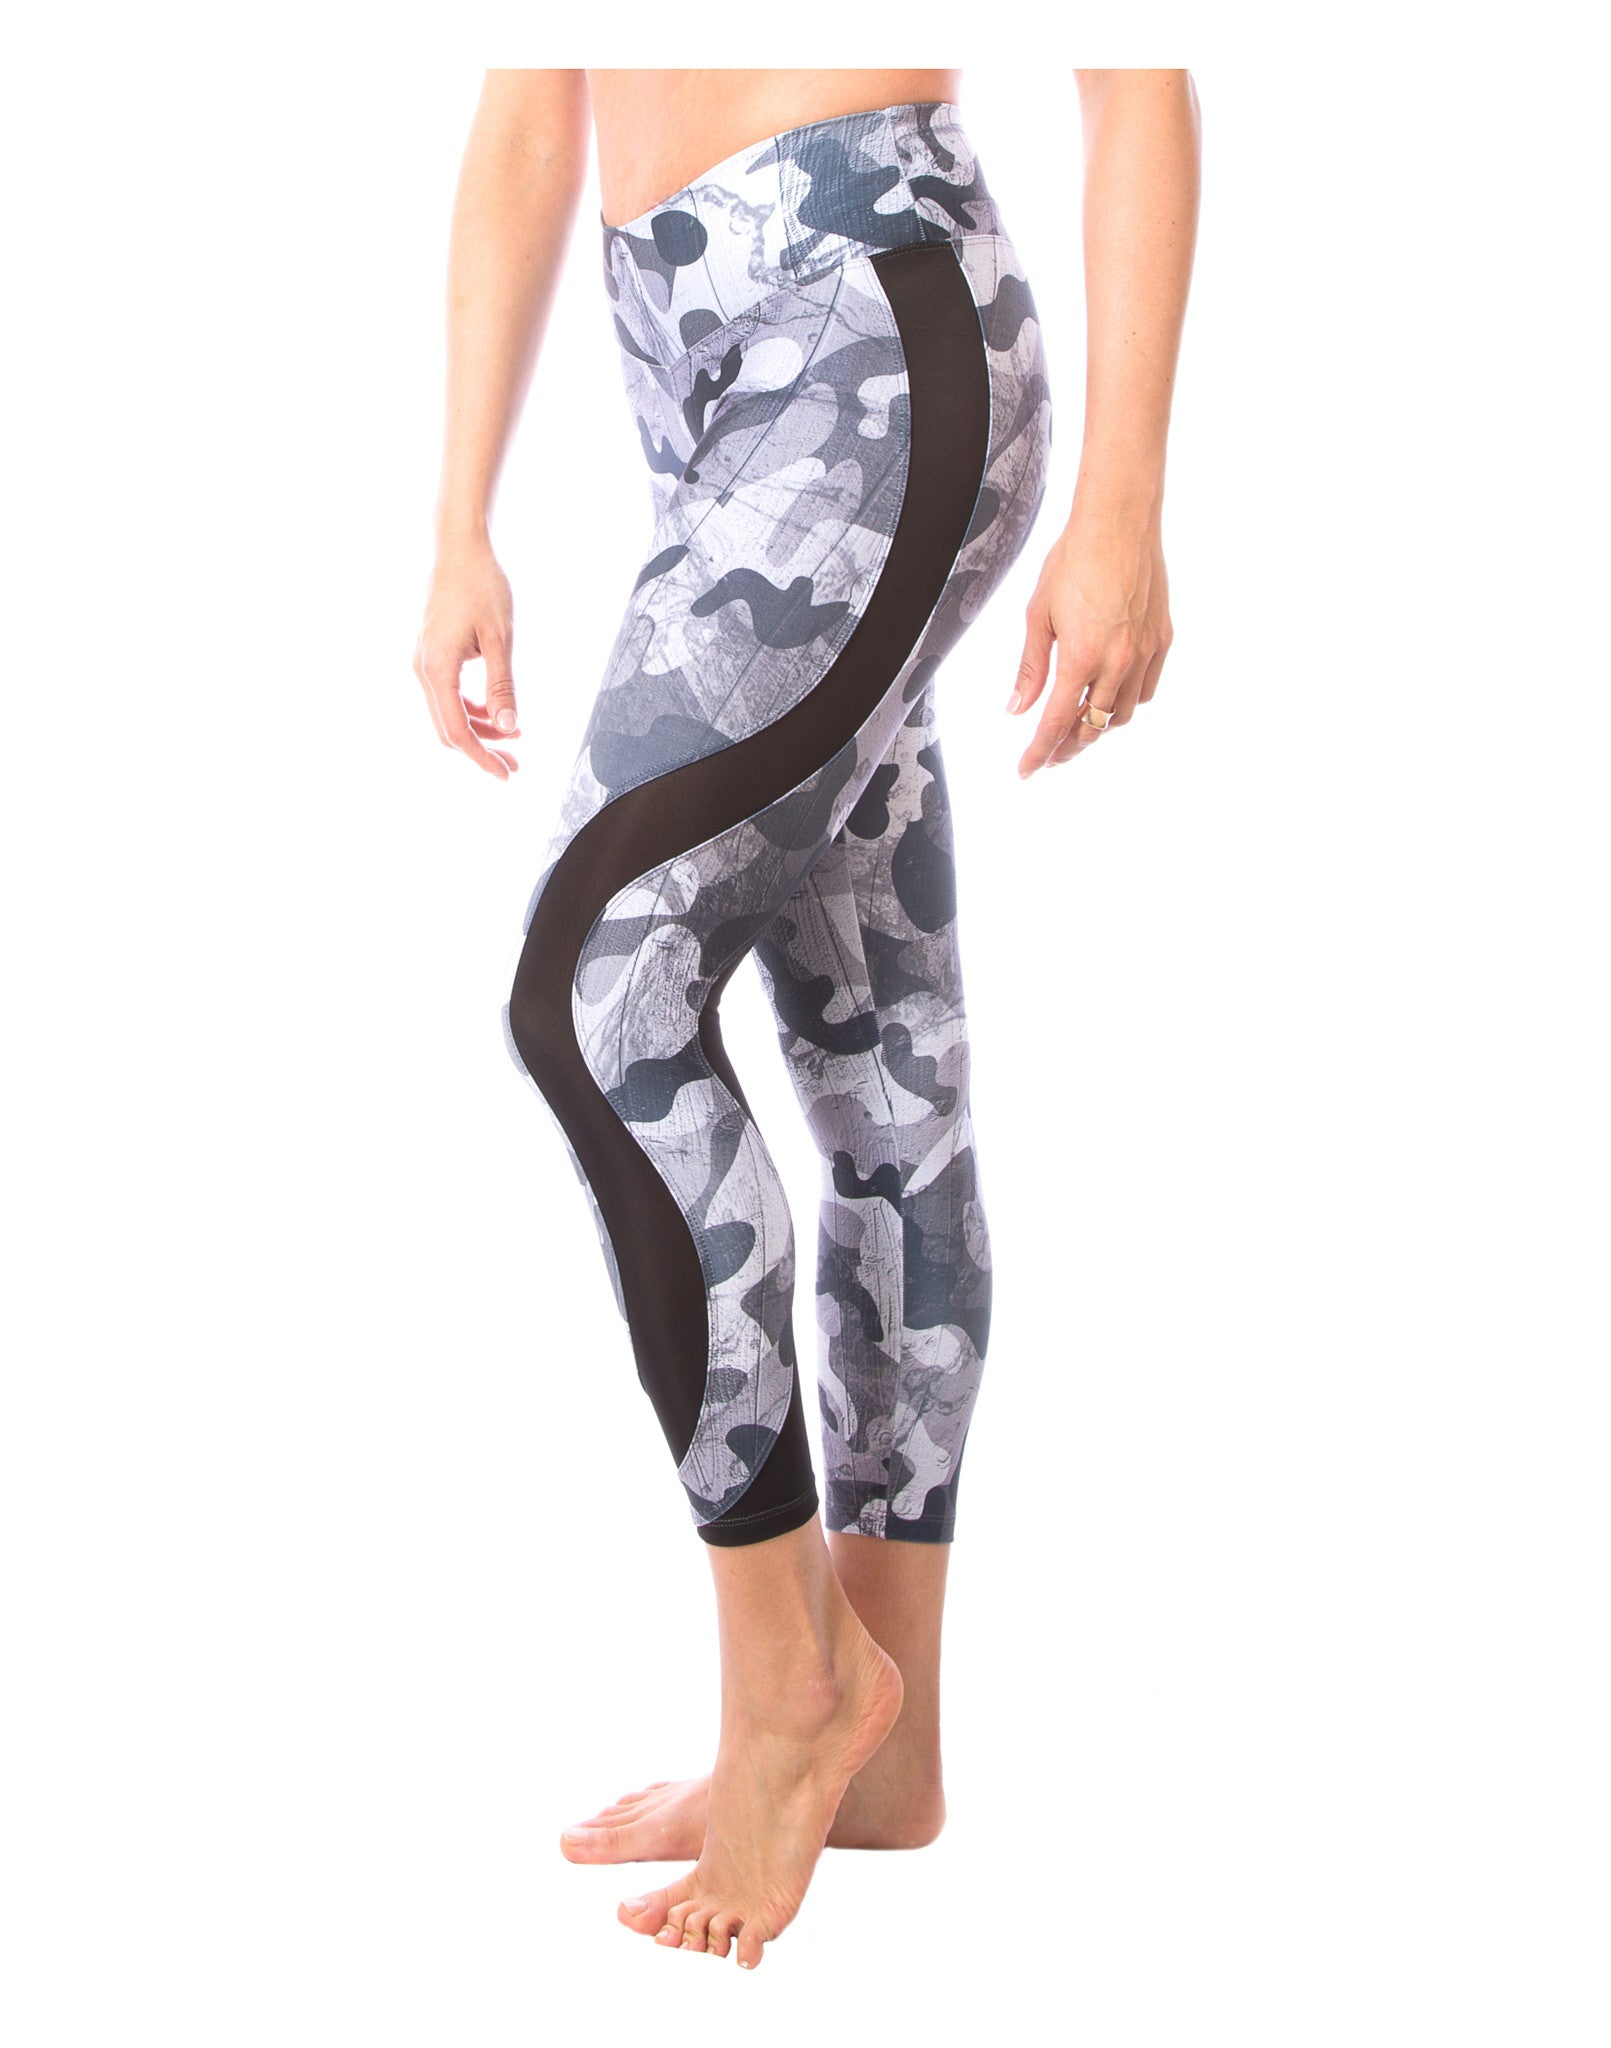 Black and White Camo Mesh Yoga Pants | Printed Leggings for Women | LavaLoka